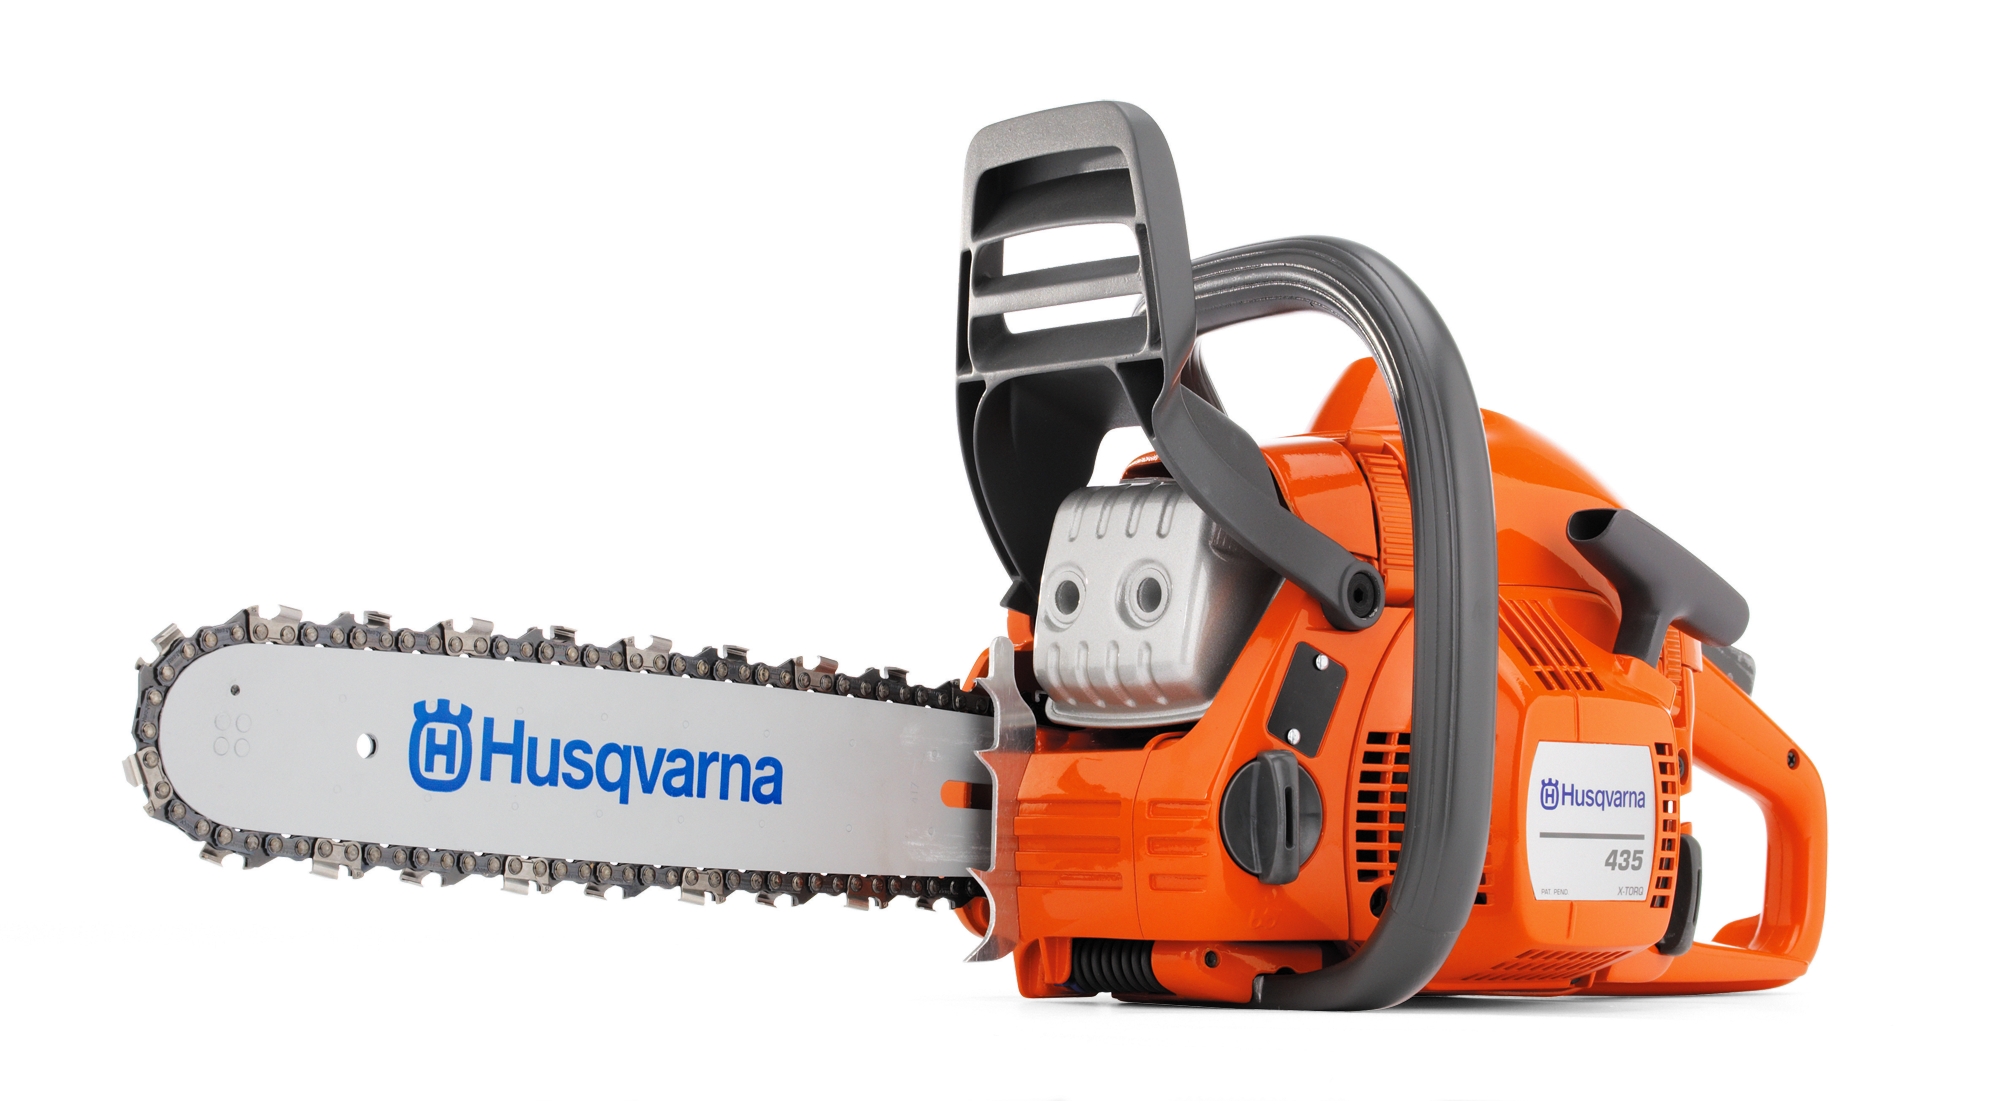 Husqvarna chainsaws . Electric saw png picture royalty free